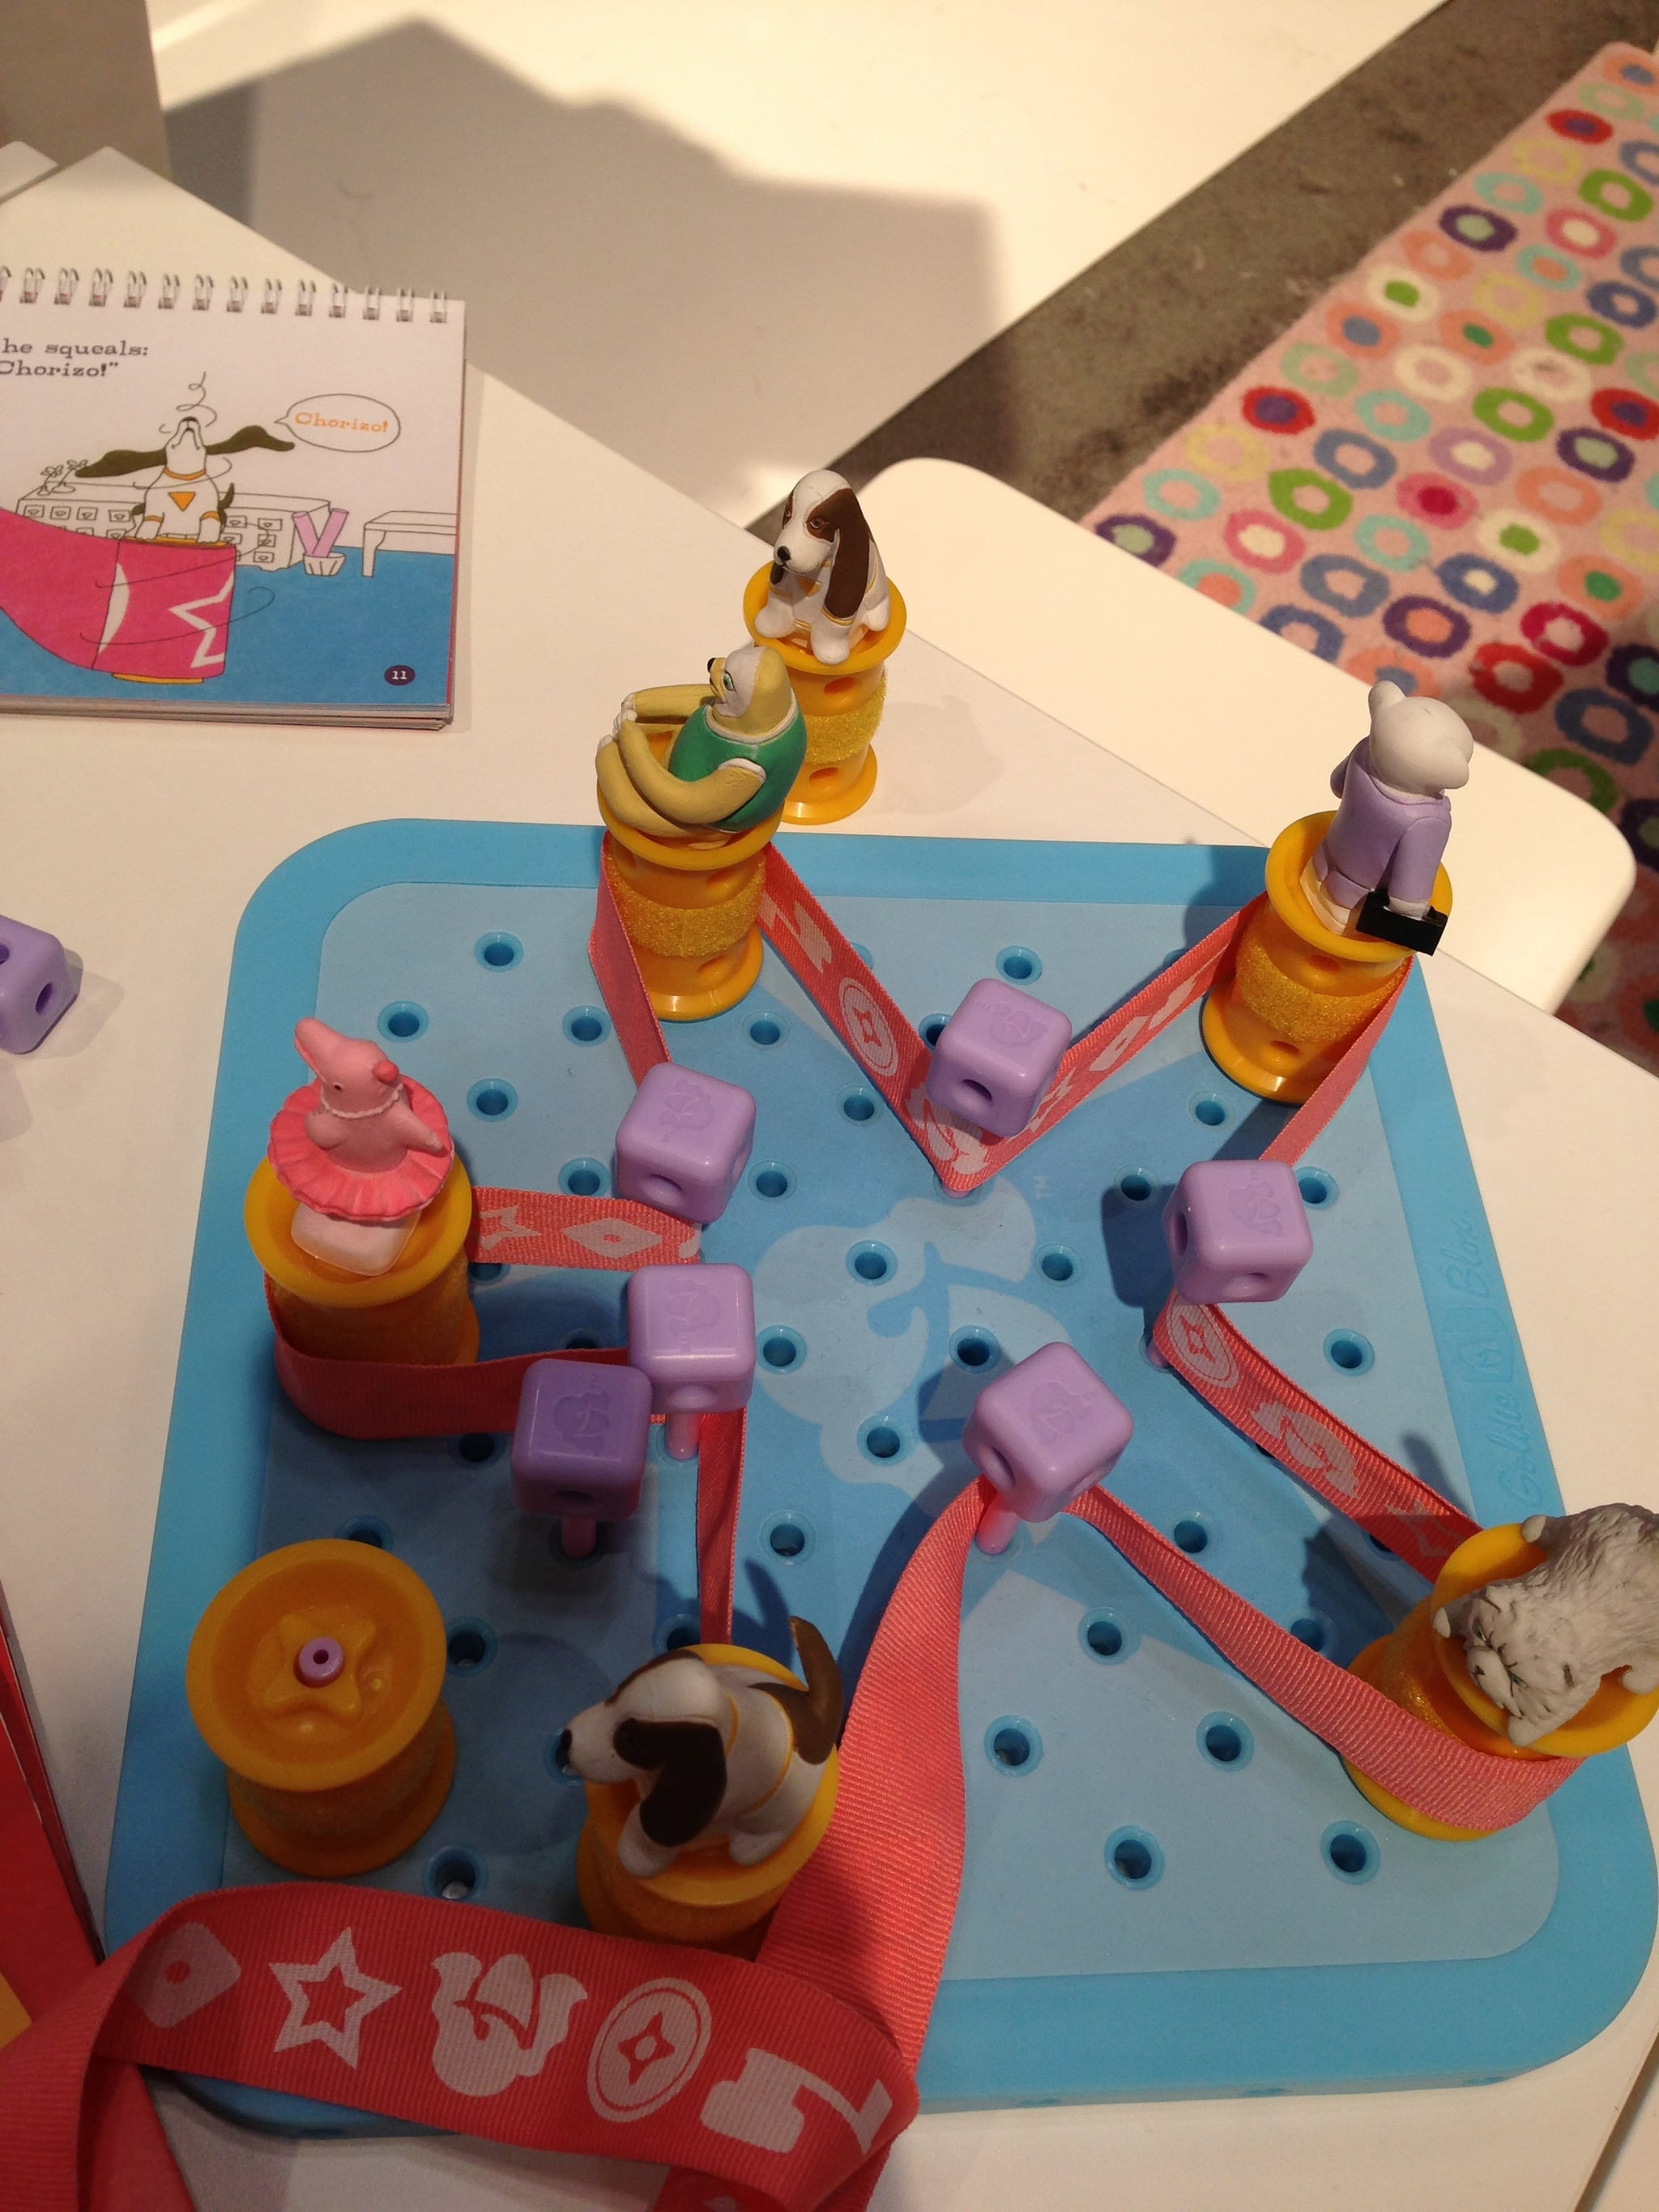 Developed by a Stanford-educated female engineer, Goldie Blox is an imaginative new way to get little girls into the mechanics of engineering.